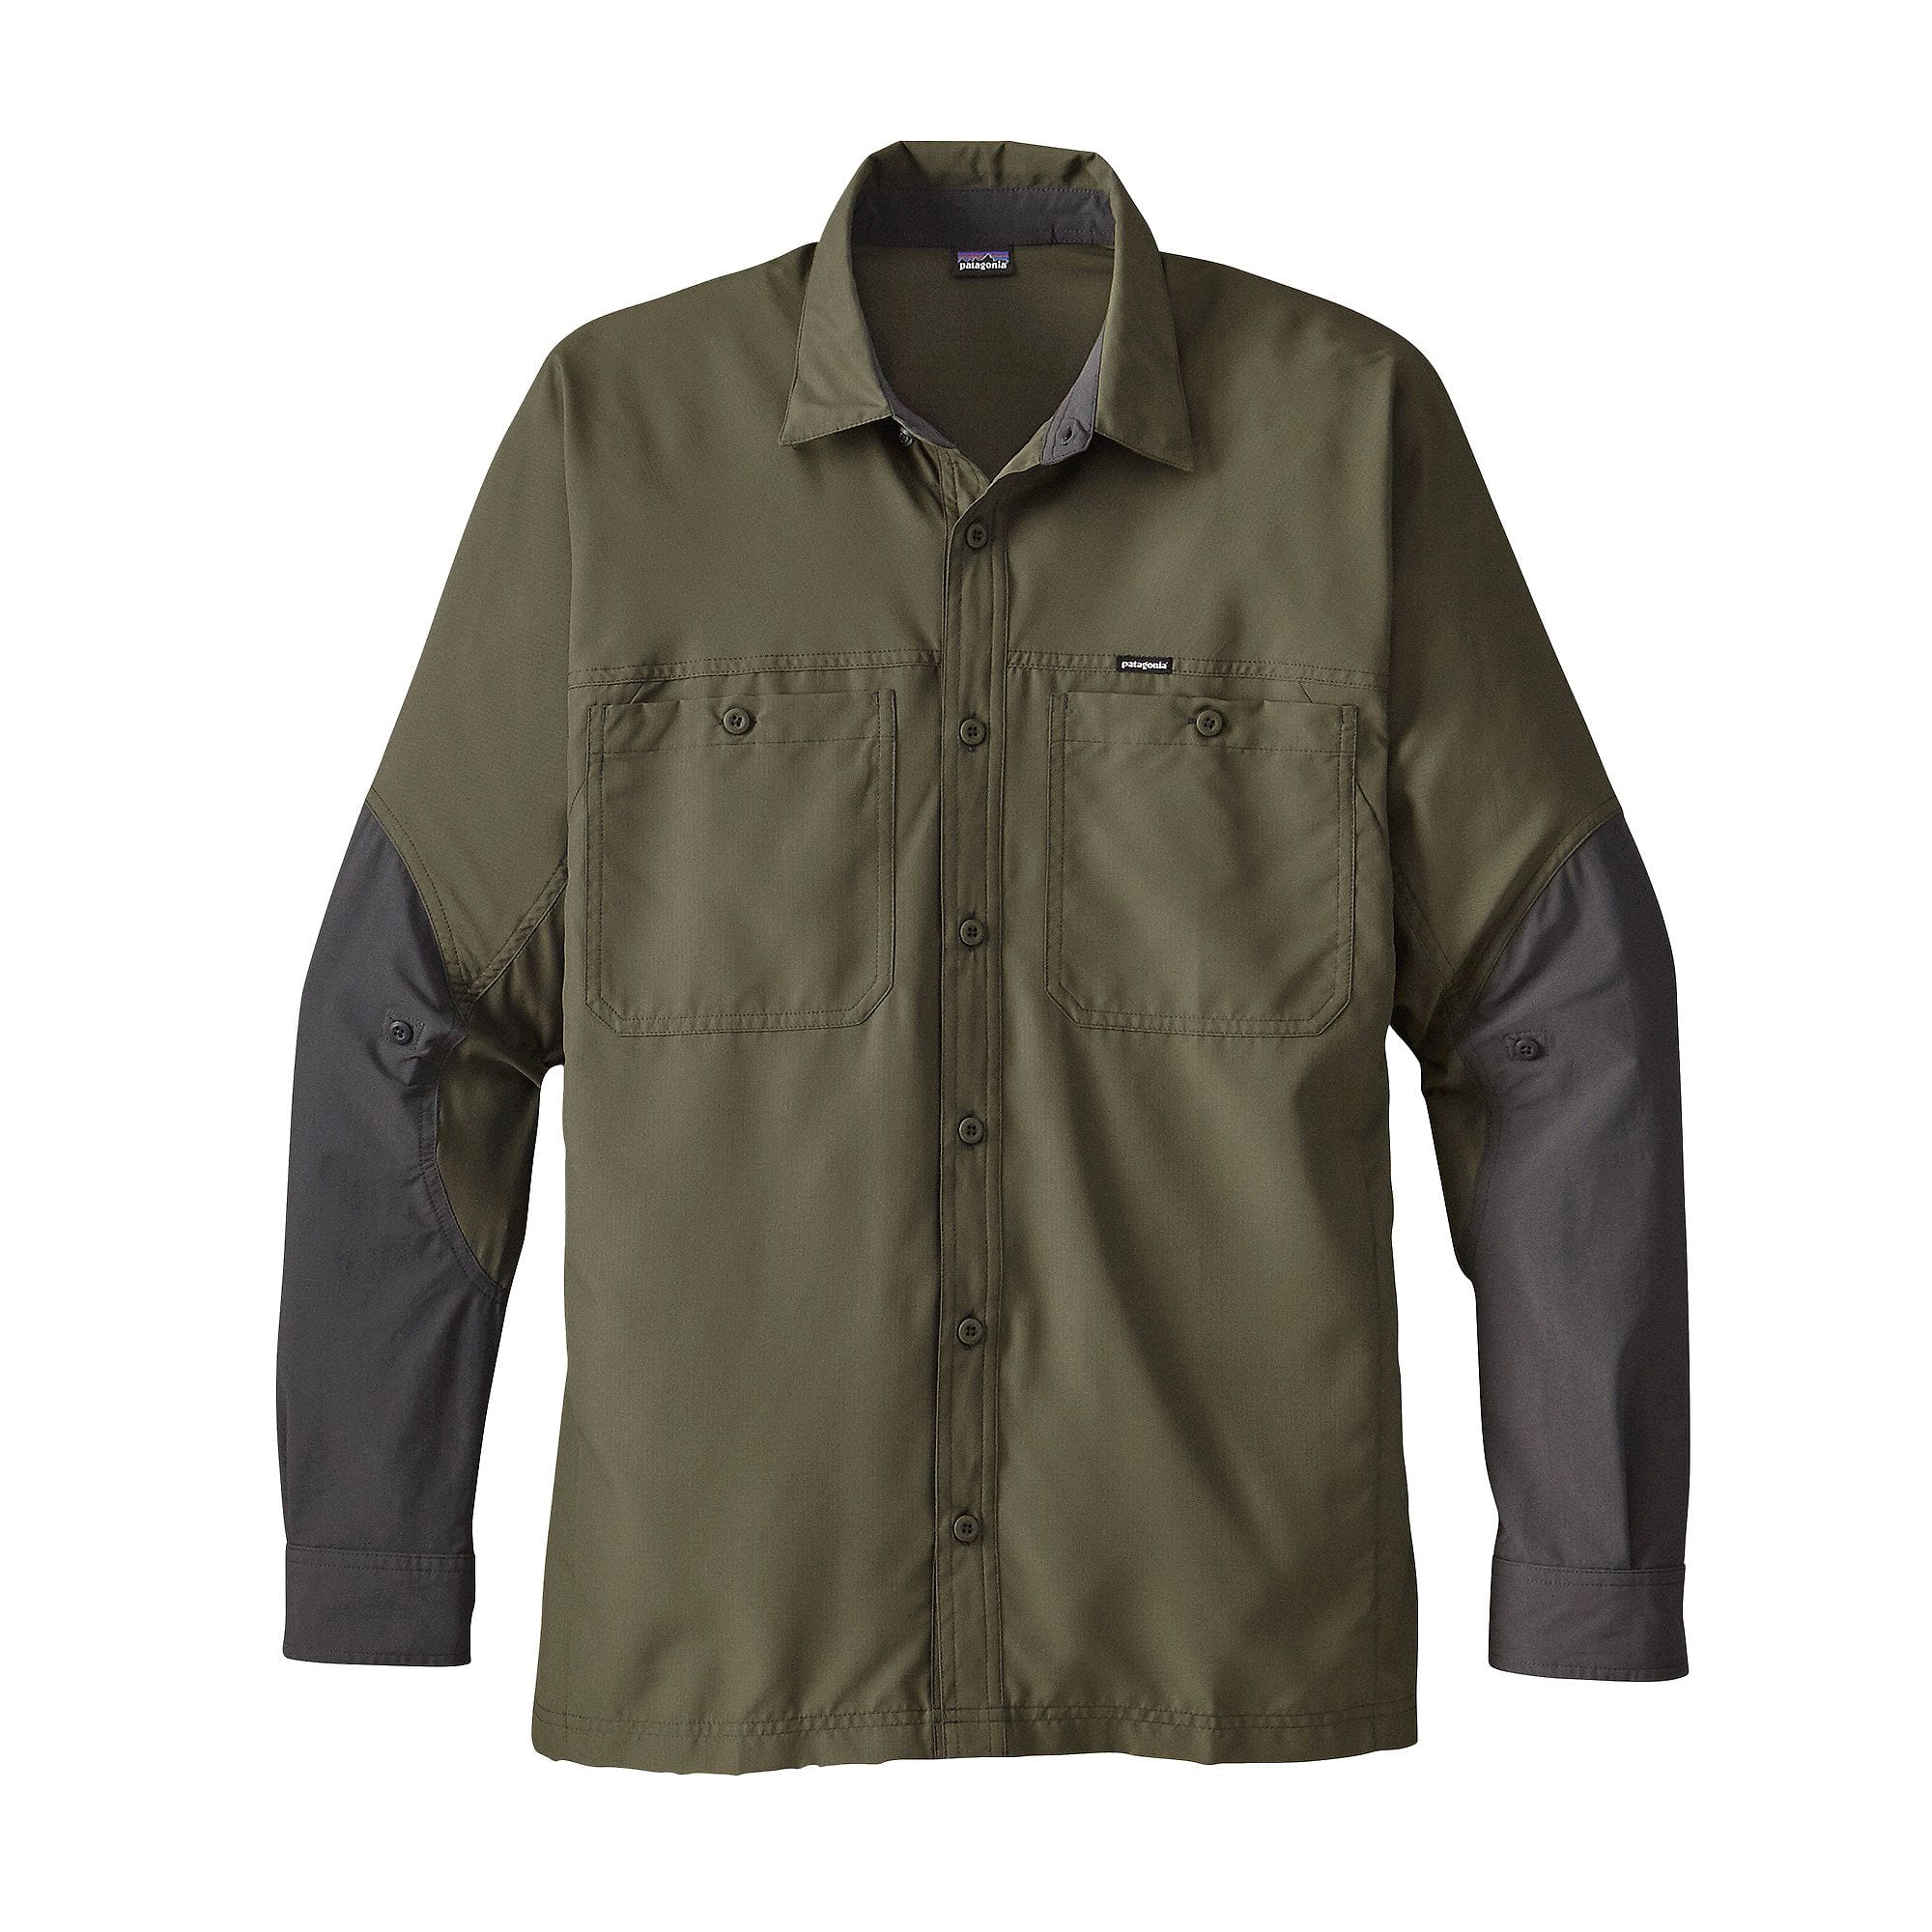 Patagonia mens lightweight field shirt the sporting lodge for Patagonia fly fishing shirt